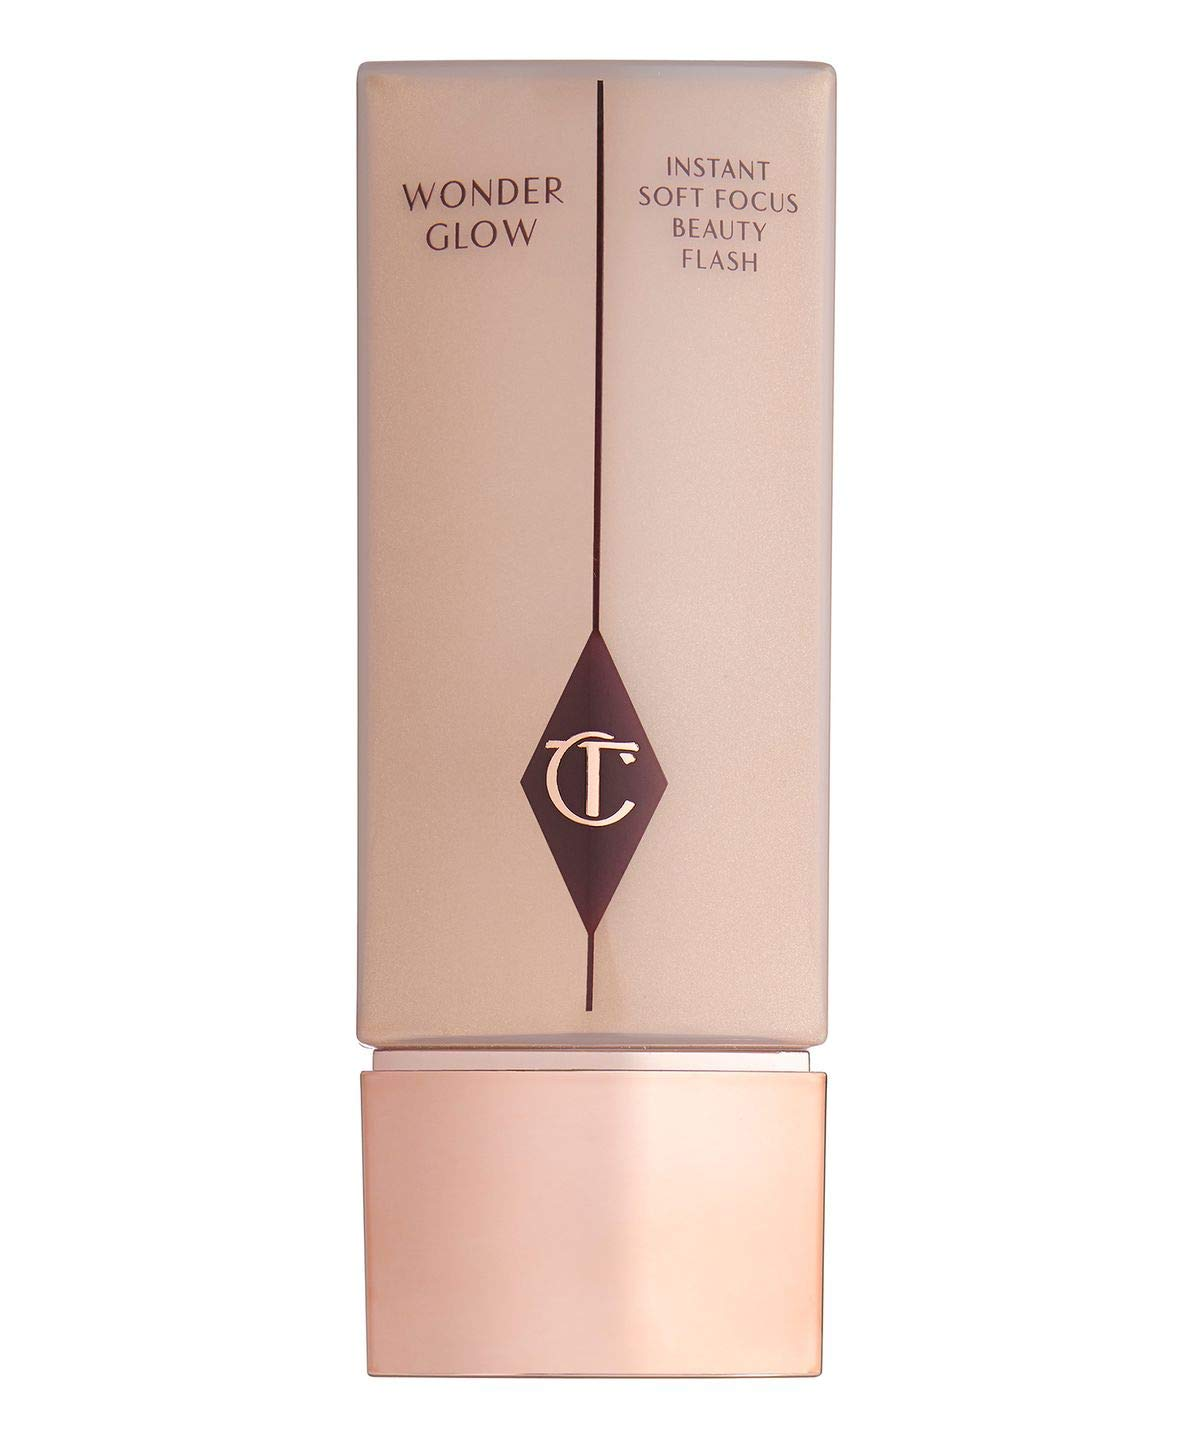 Charlotte Tilbury WONDERGLOW Instant Soft-Focus Beauty Flash 1.4 oz by CHARLOTTE TILBURY